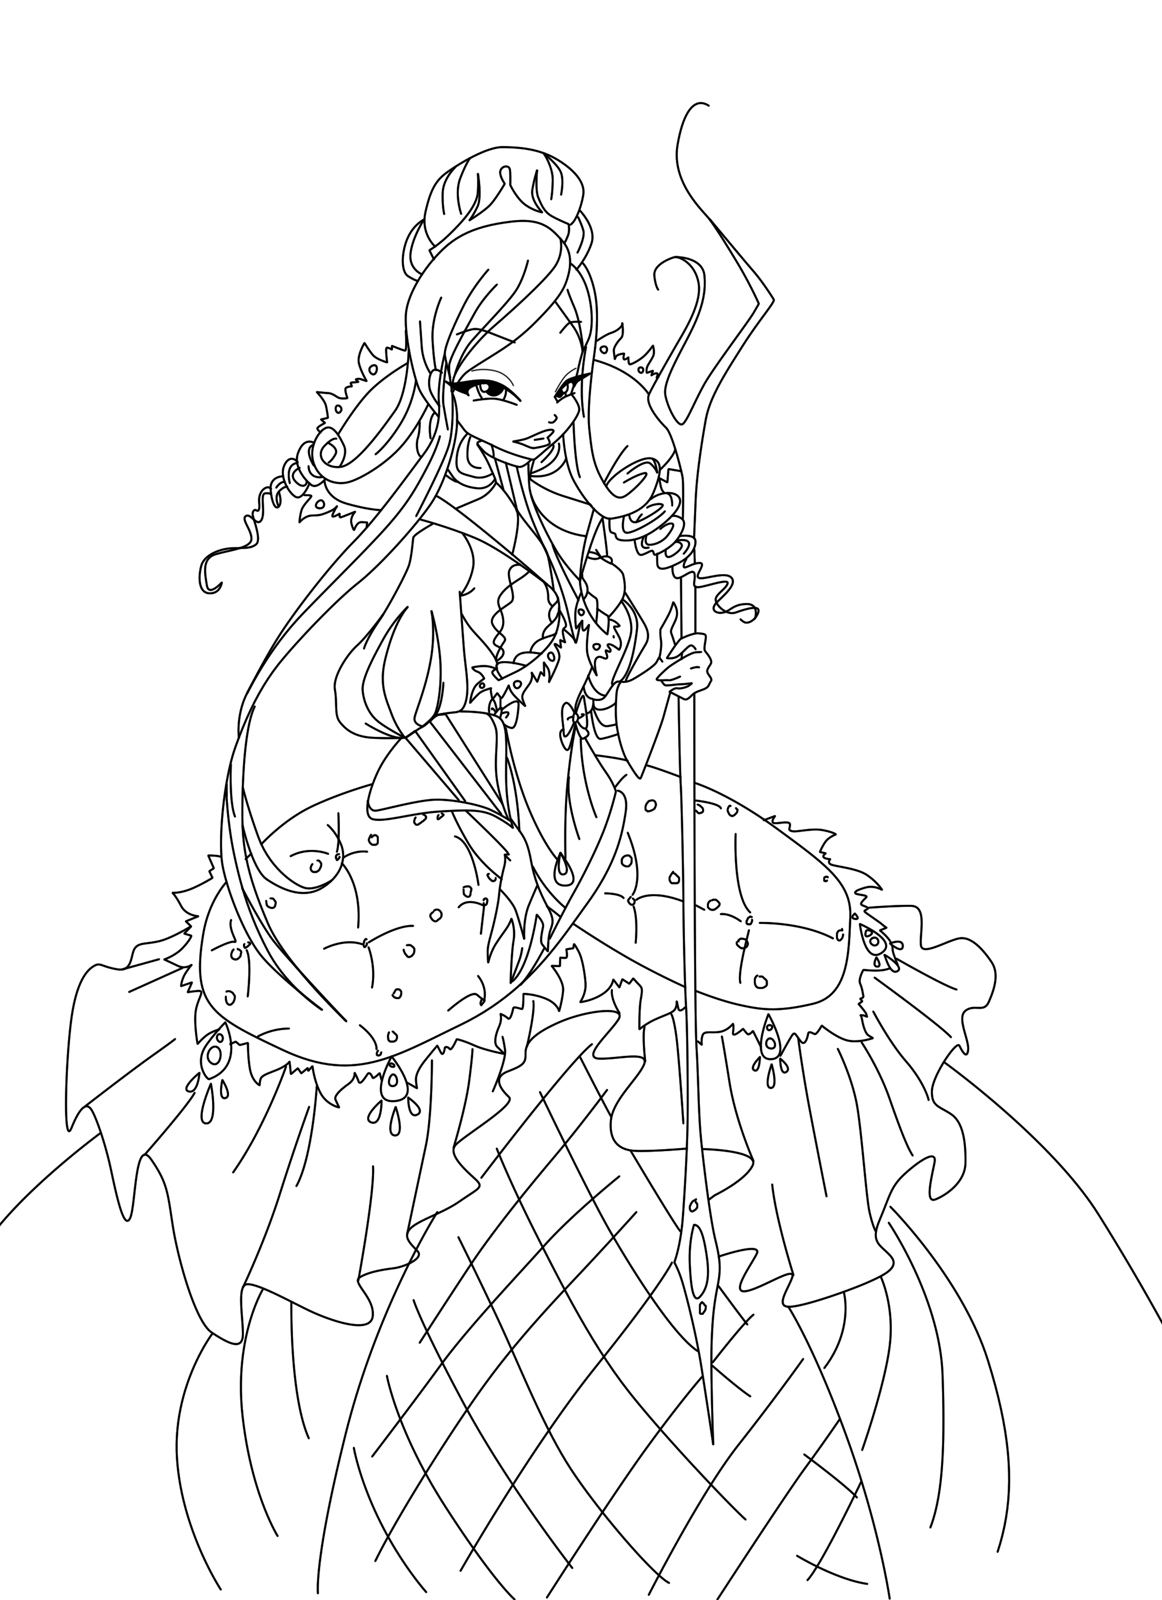 winx coloring pages winx princess coloring pages download and print for free winx coloring pages